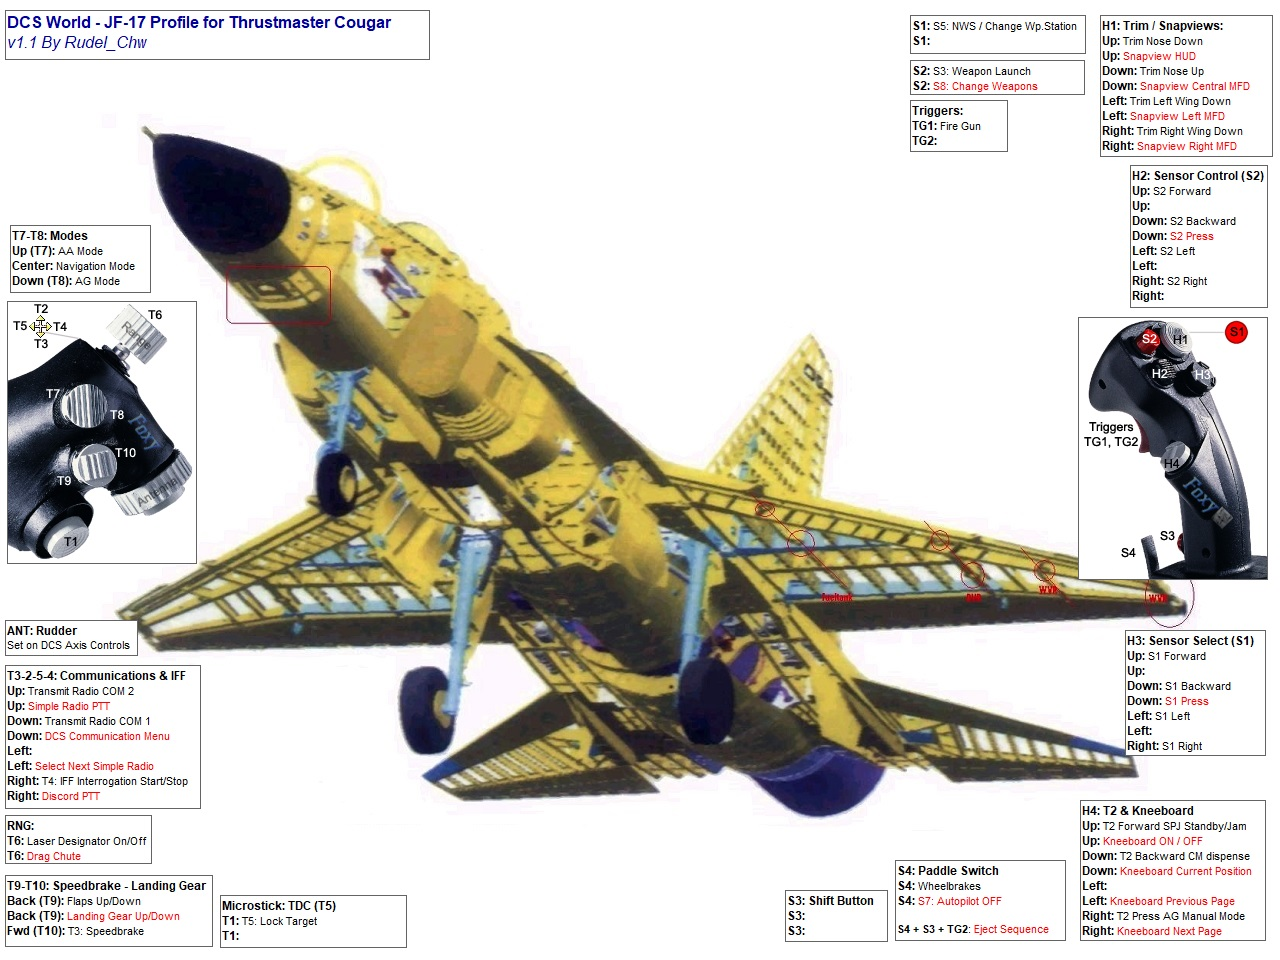 TM Hotas Cougar profile for DCS JF-17